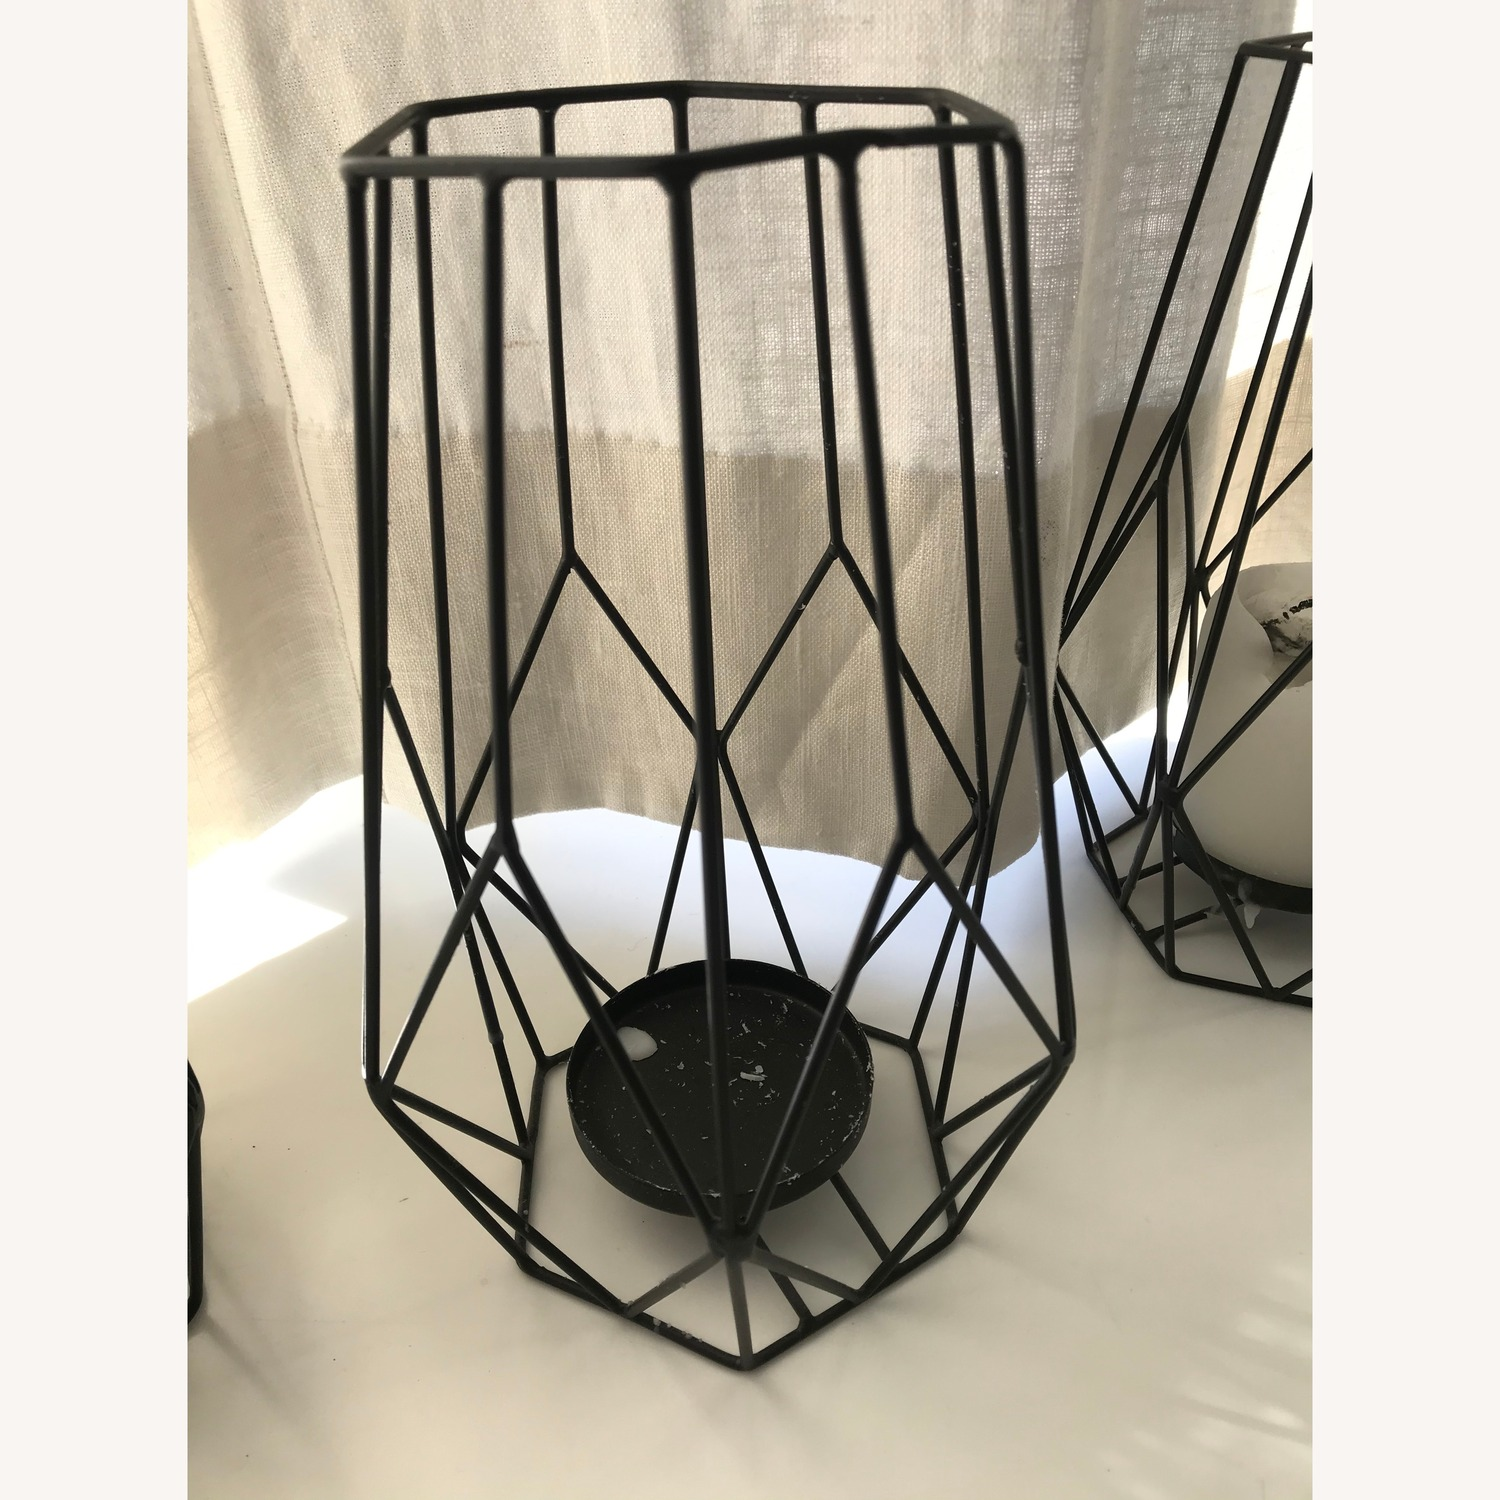 Three black wire candle holders